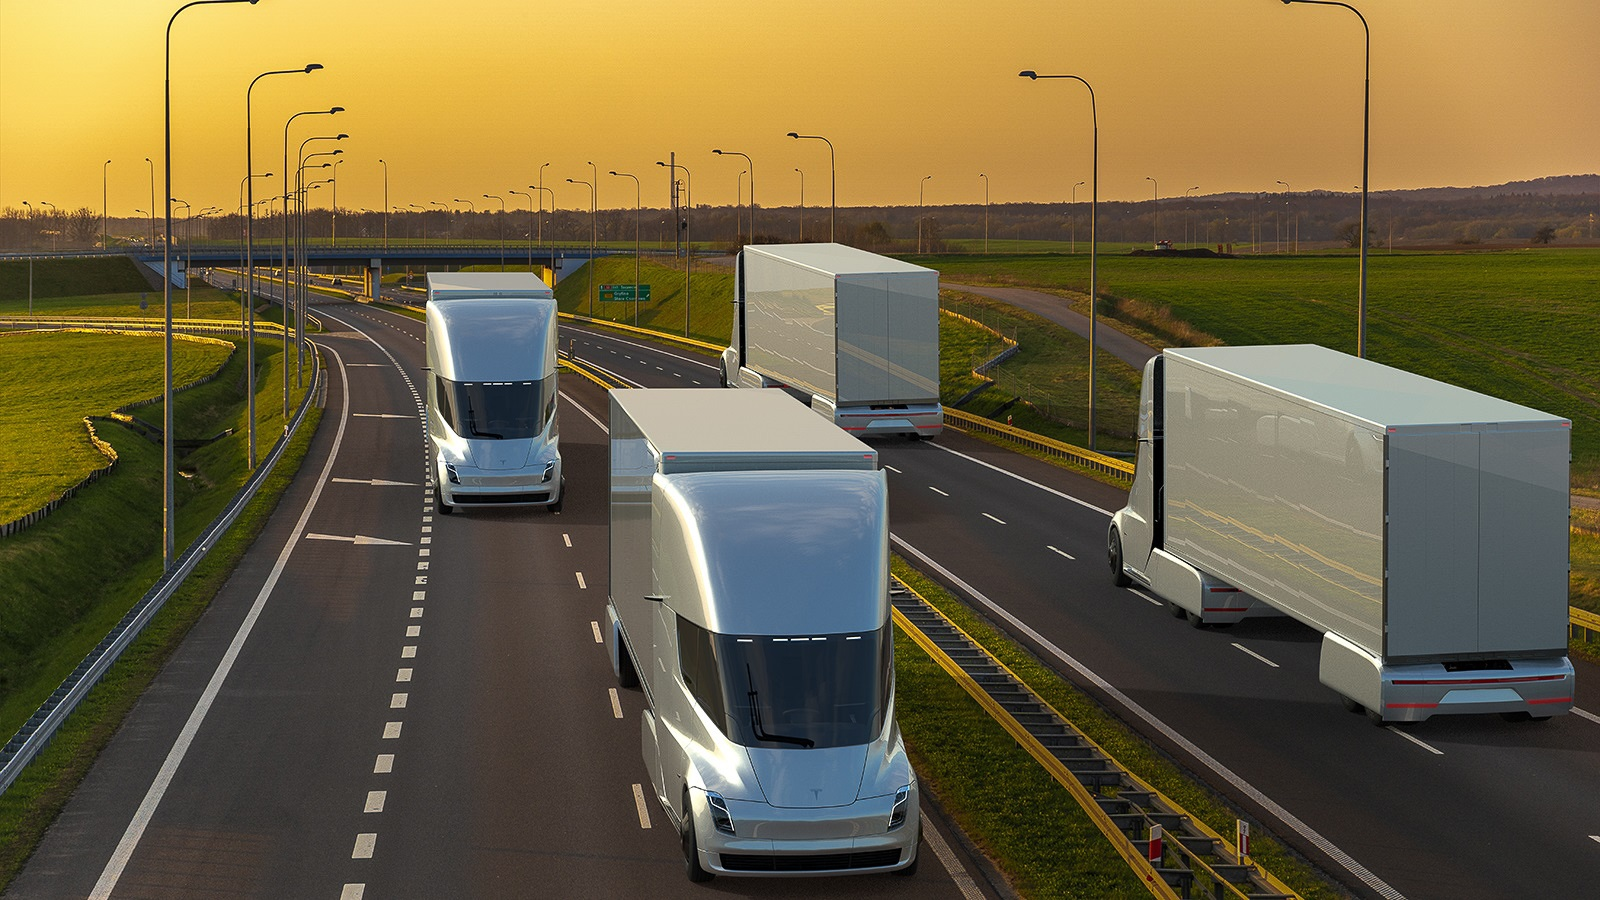 Passenger vehicles will not be the only ones to evolve on U.S. roads: Heavy-duty trucks will also need to go electric, requiring new battery and charging technology. (Image by Mike Mareen/Shutterstock.)